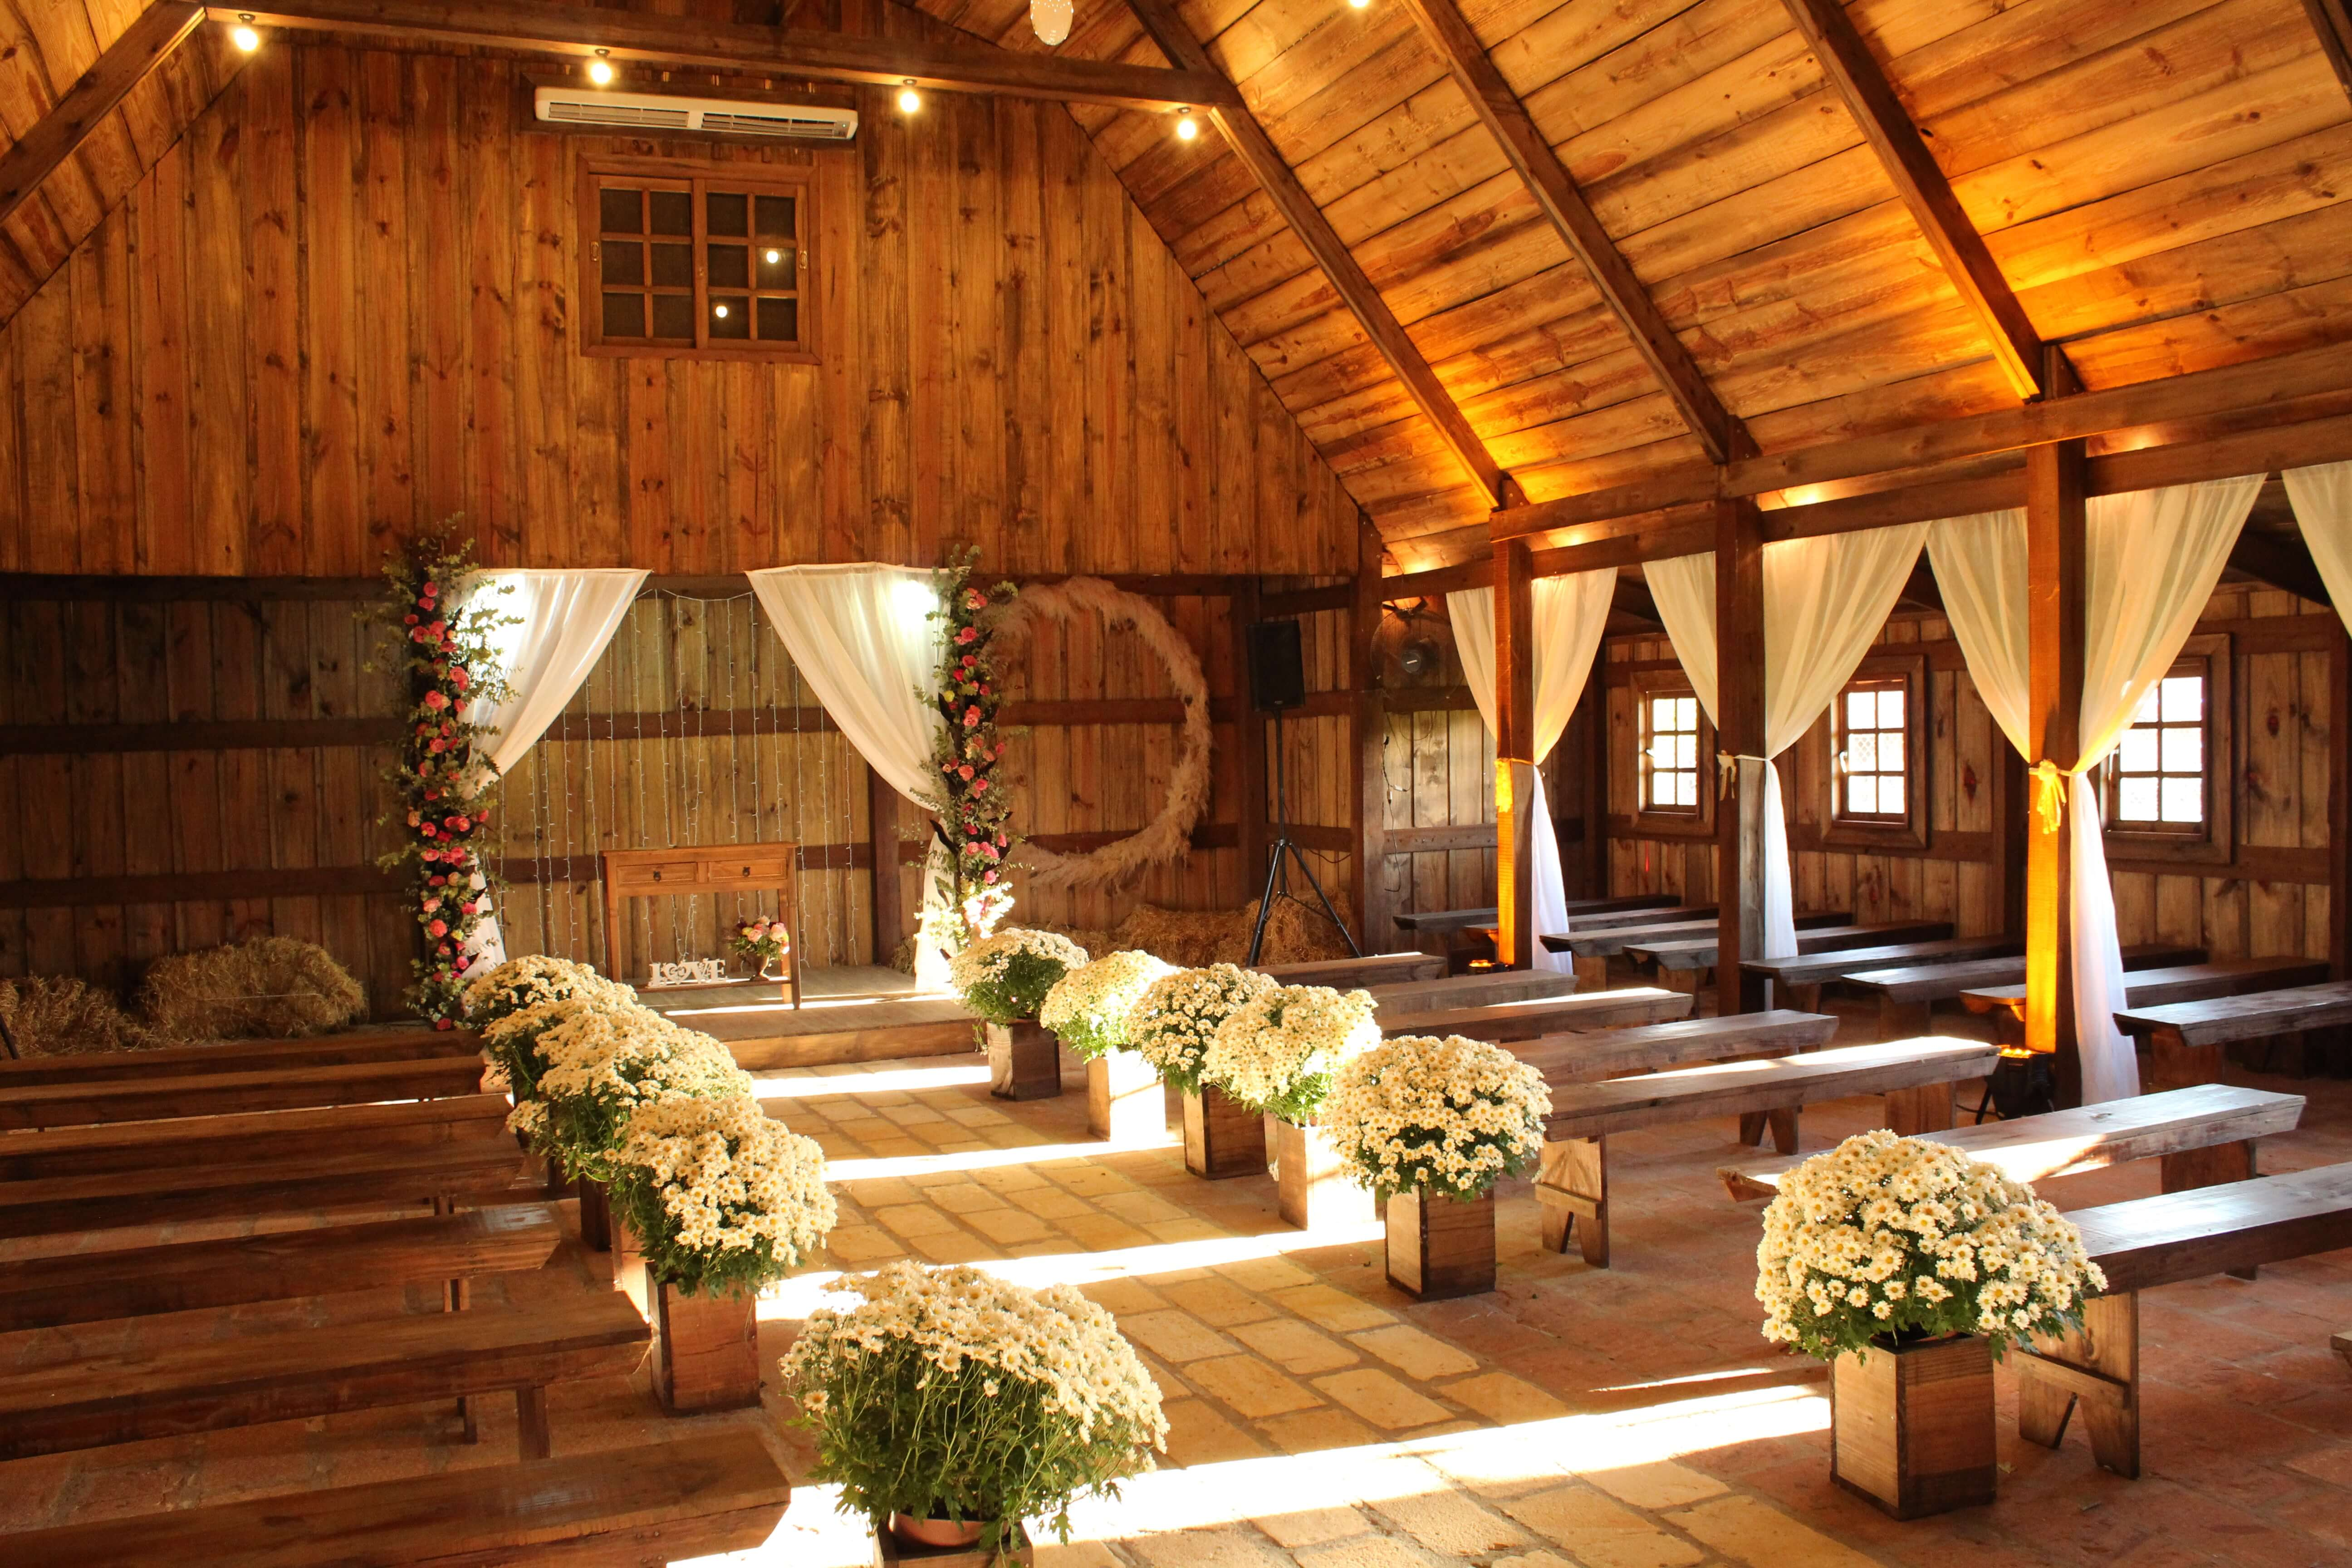 Barn set up for a wedding ceremony